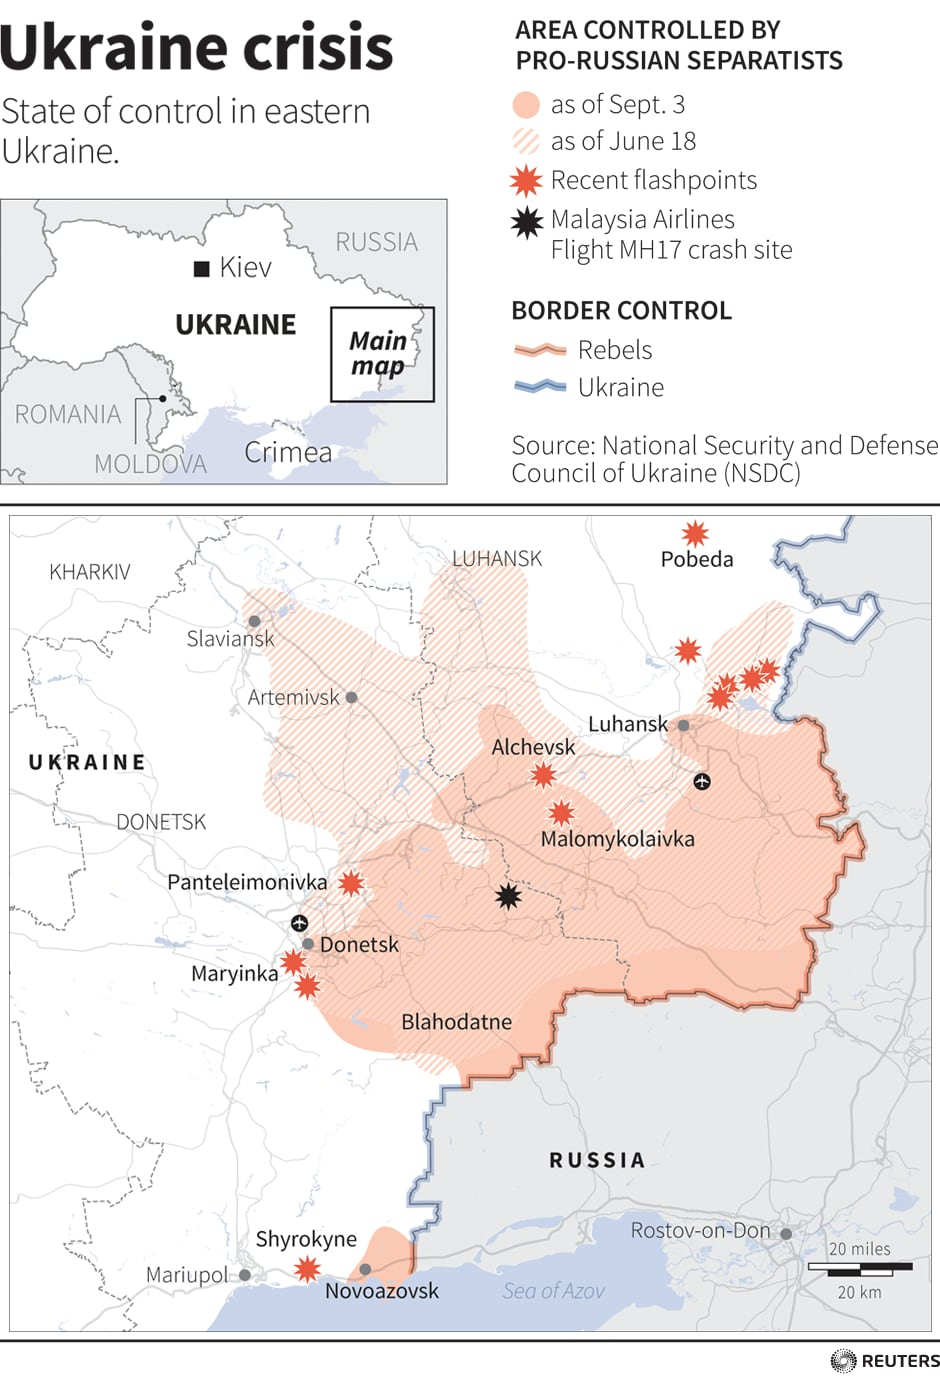 Ukraine map showing recent clashes between pro-Russian separatists and Ukrainian forces.